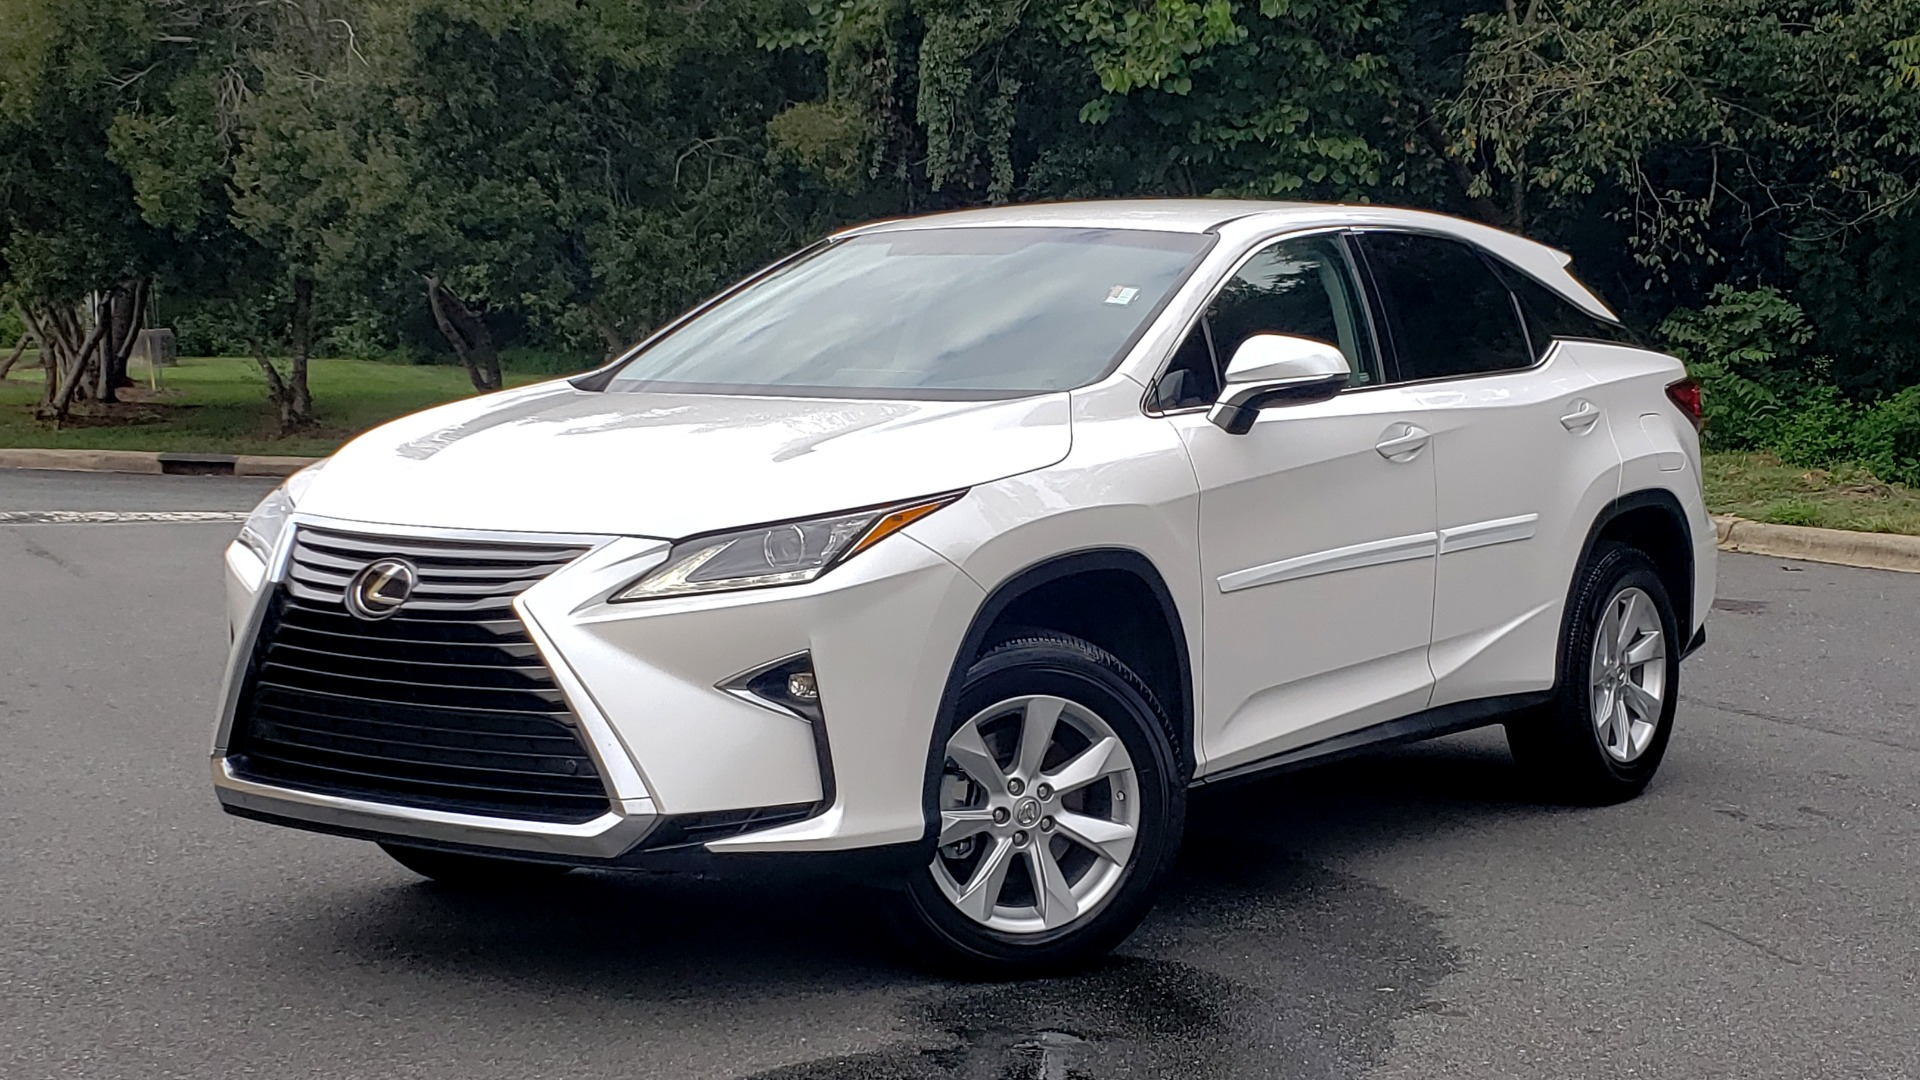 Used 2016 Lexus RX 350 FWD / 4-DR / 3.5L V6 / 8-SPD AUTO / LEATHER / REARVIEW for sale $29,795 at Formula Imports in Charlotte NC 28227 1